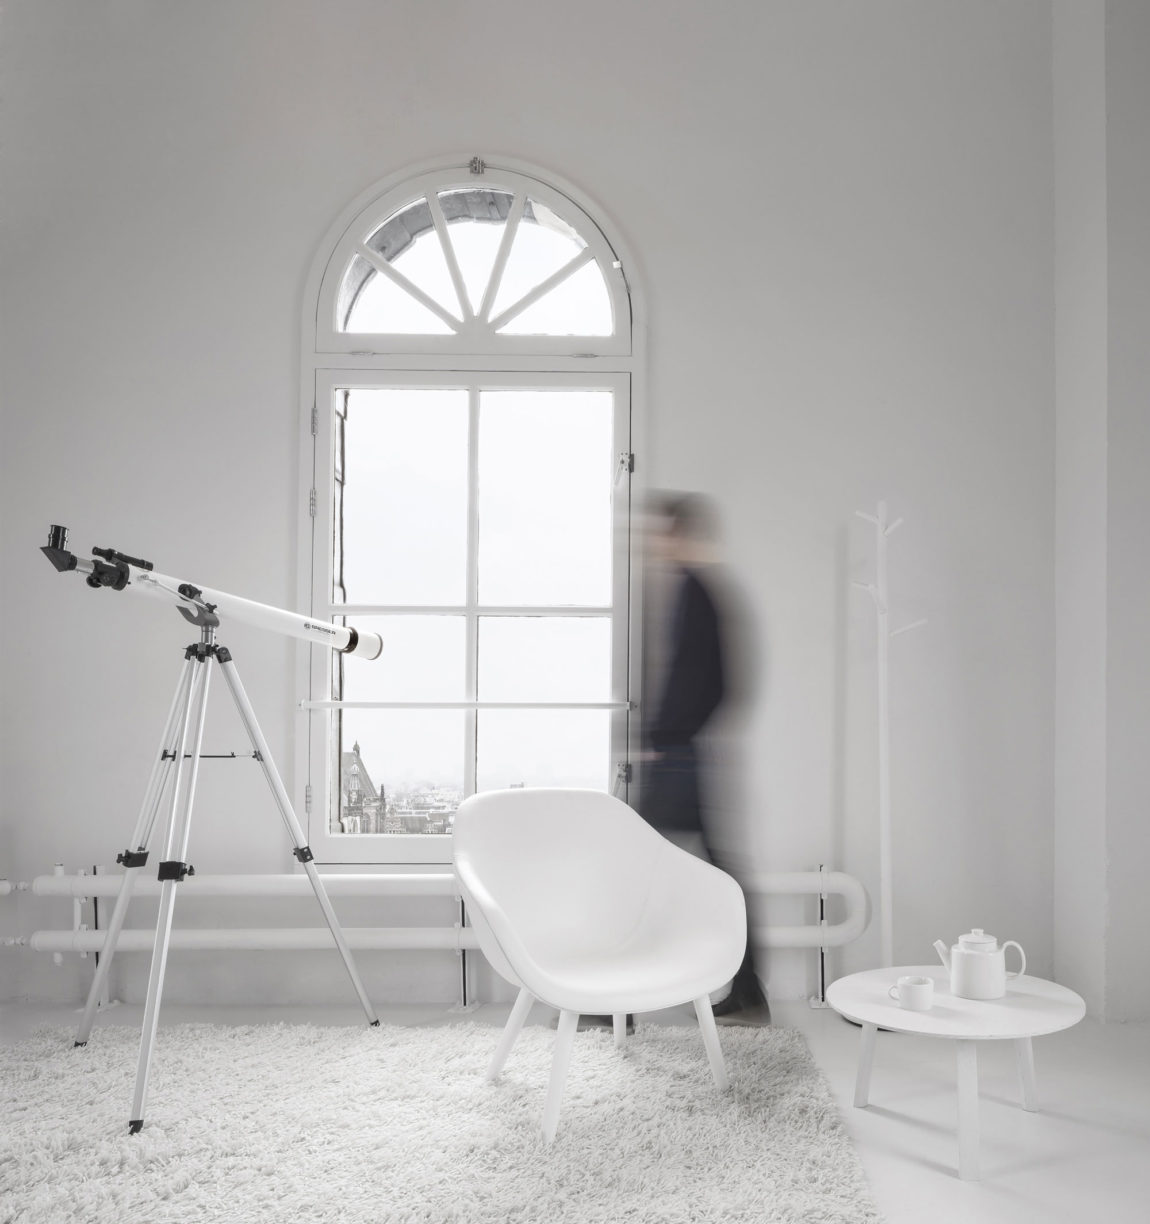 Culture 01 by i29 interior architects (1)